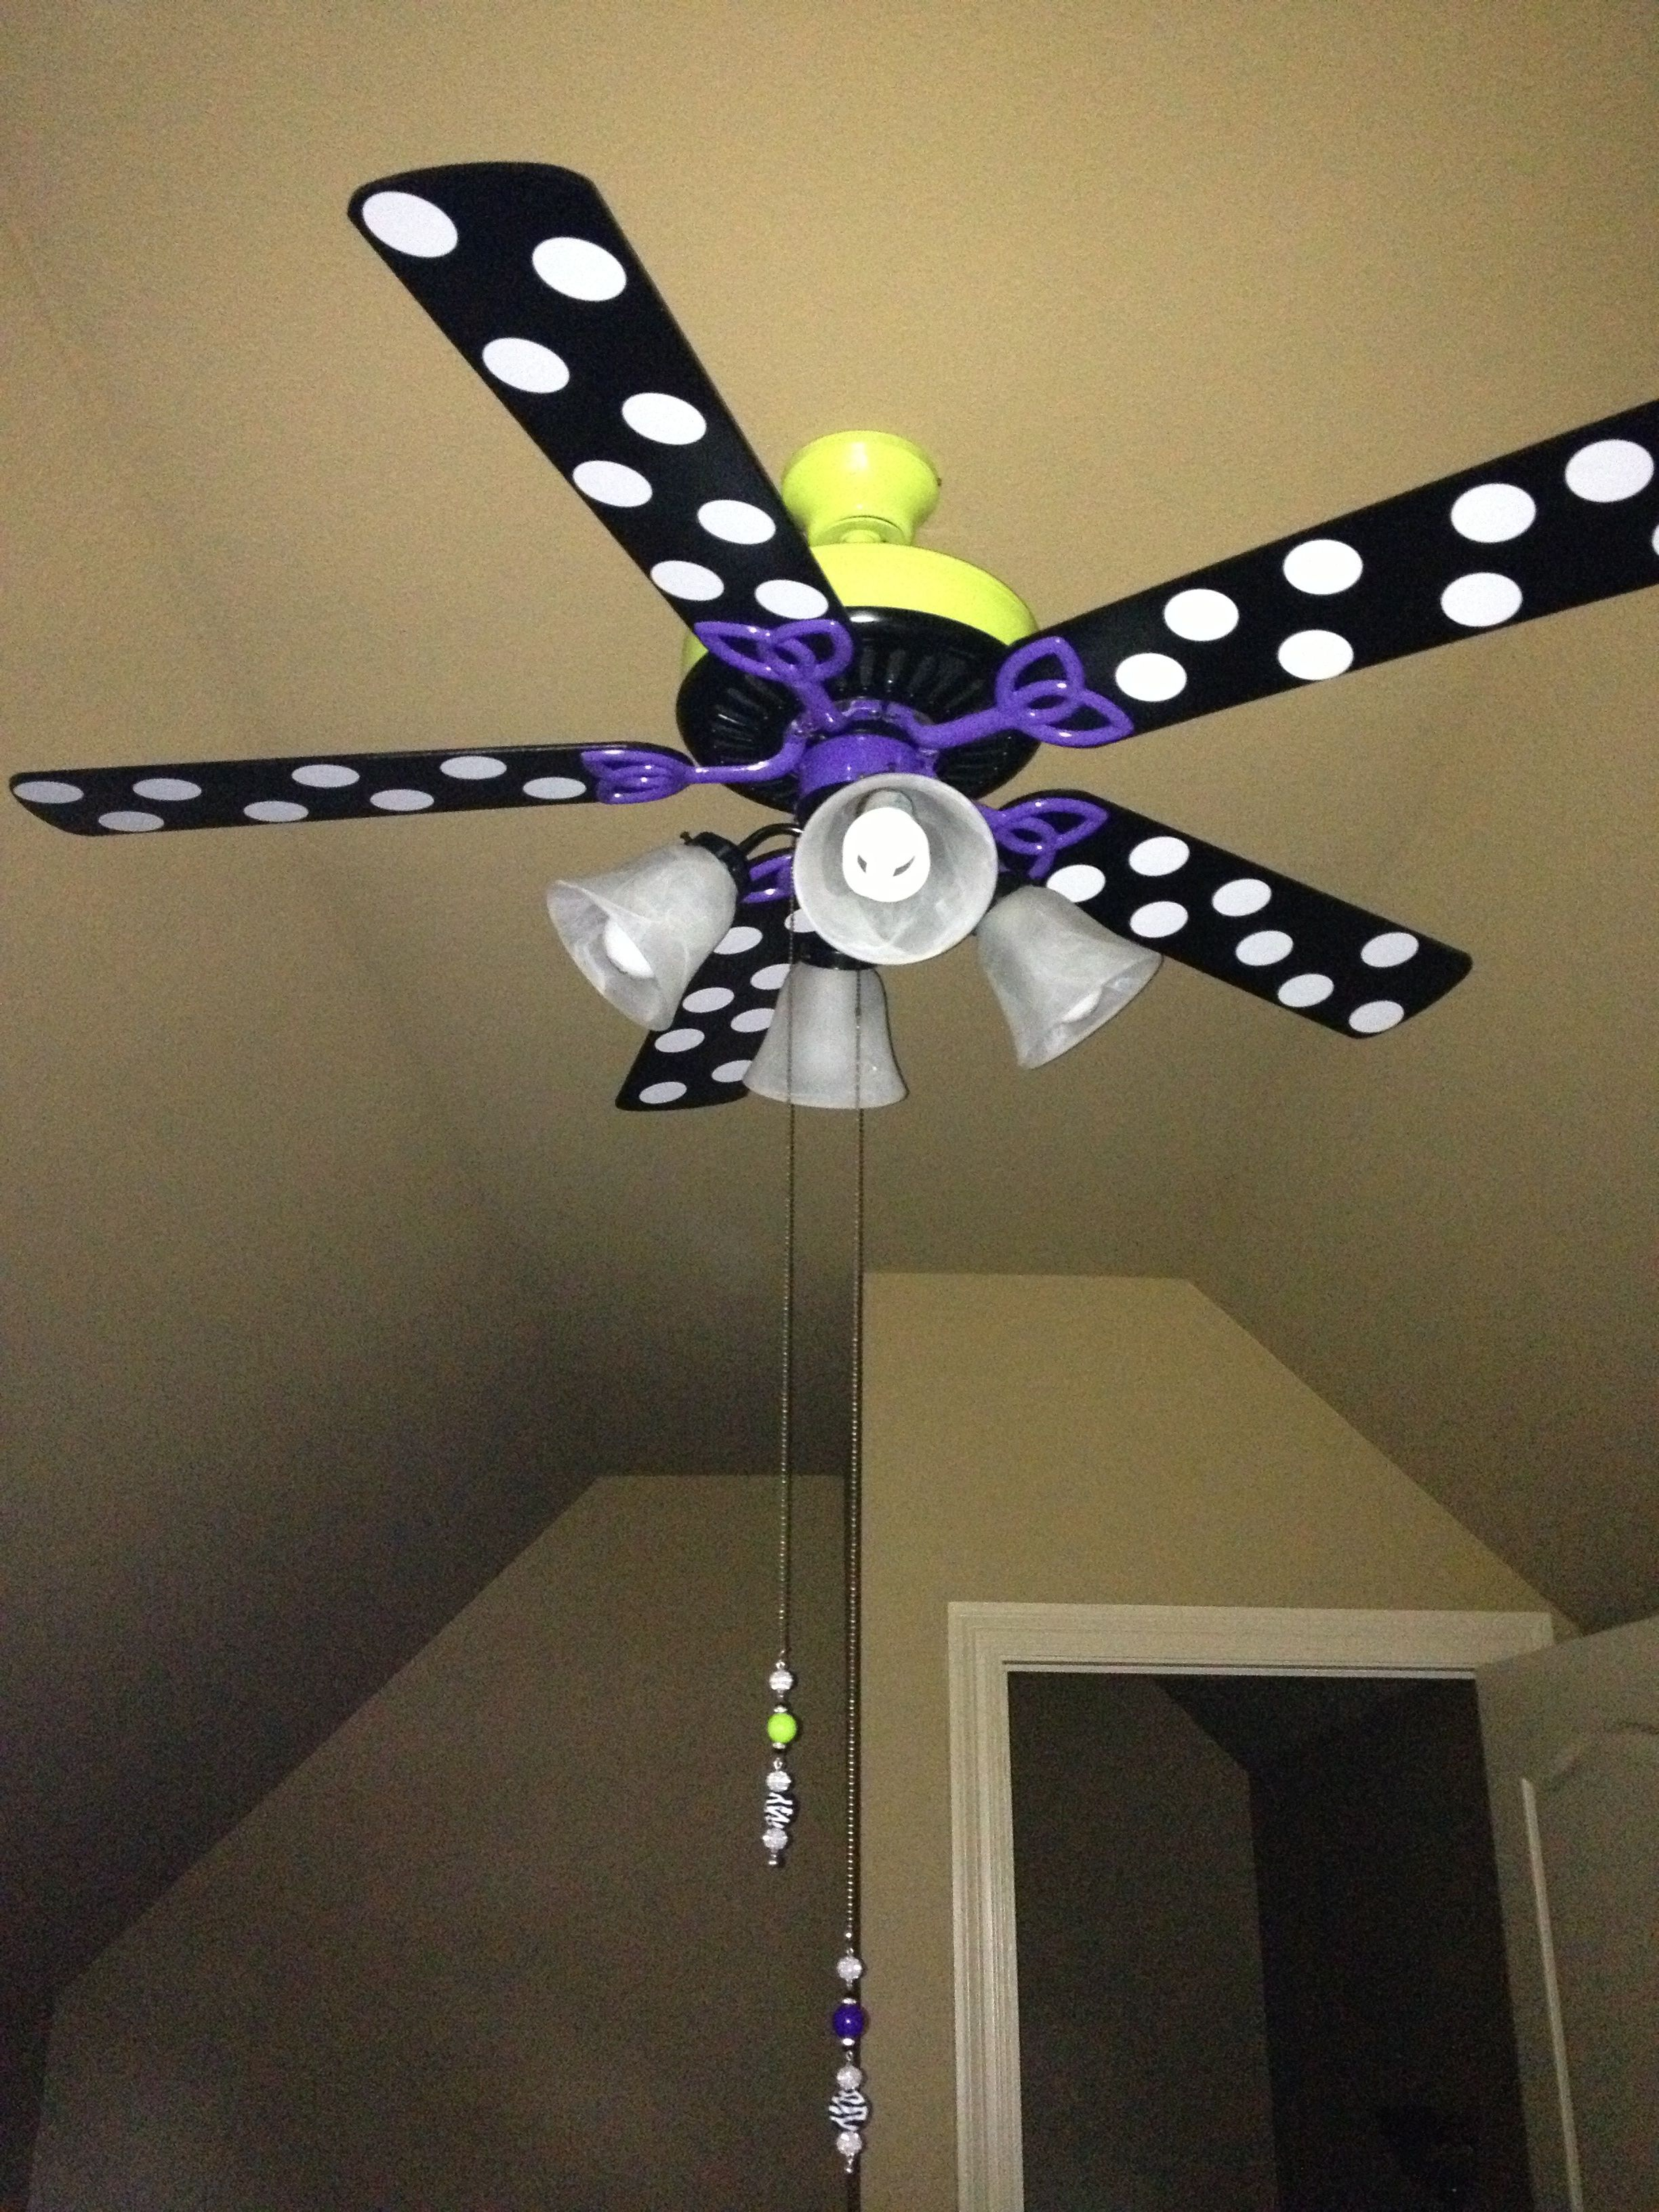 Took An Ordinary Brown Fan And Decorated For Girls Hangout Room Uses Black Purple Neon Green Paint Got Coordinating Pulls From